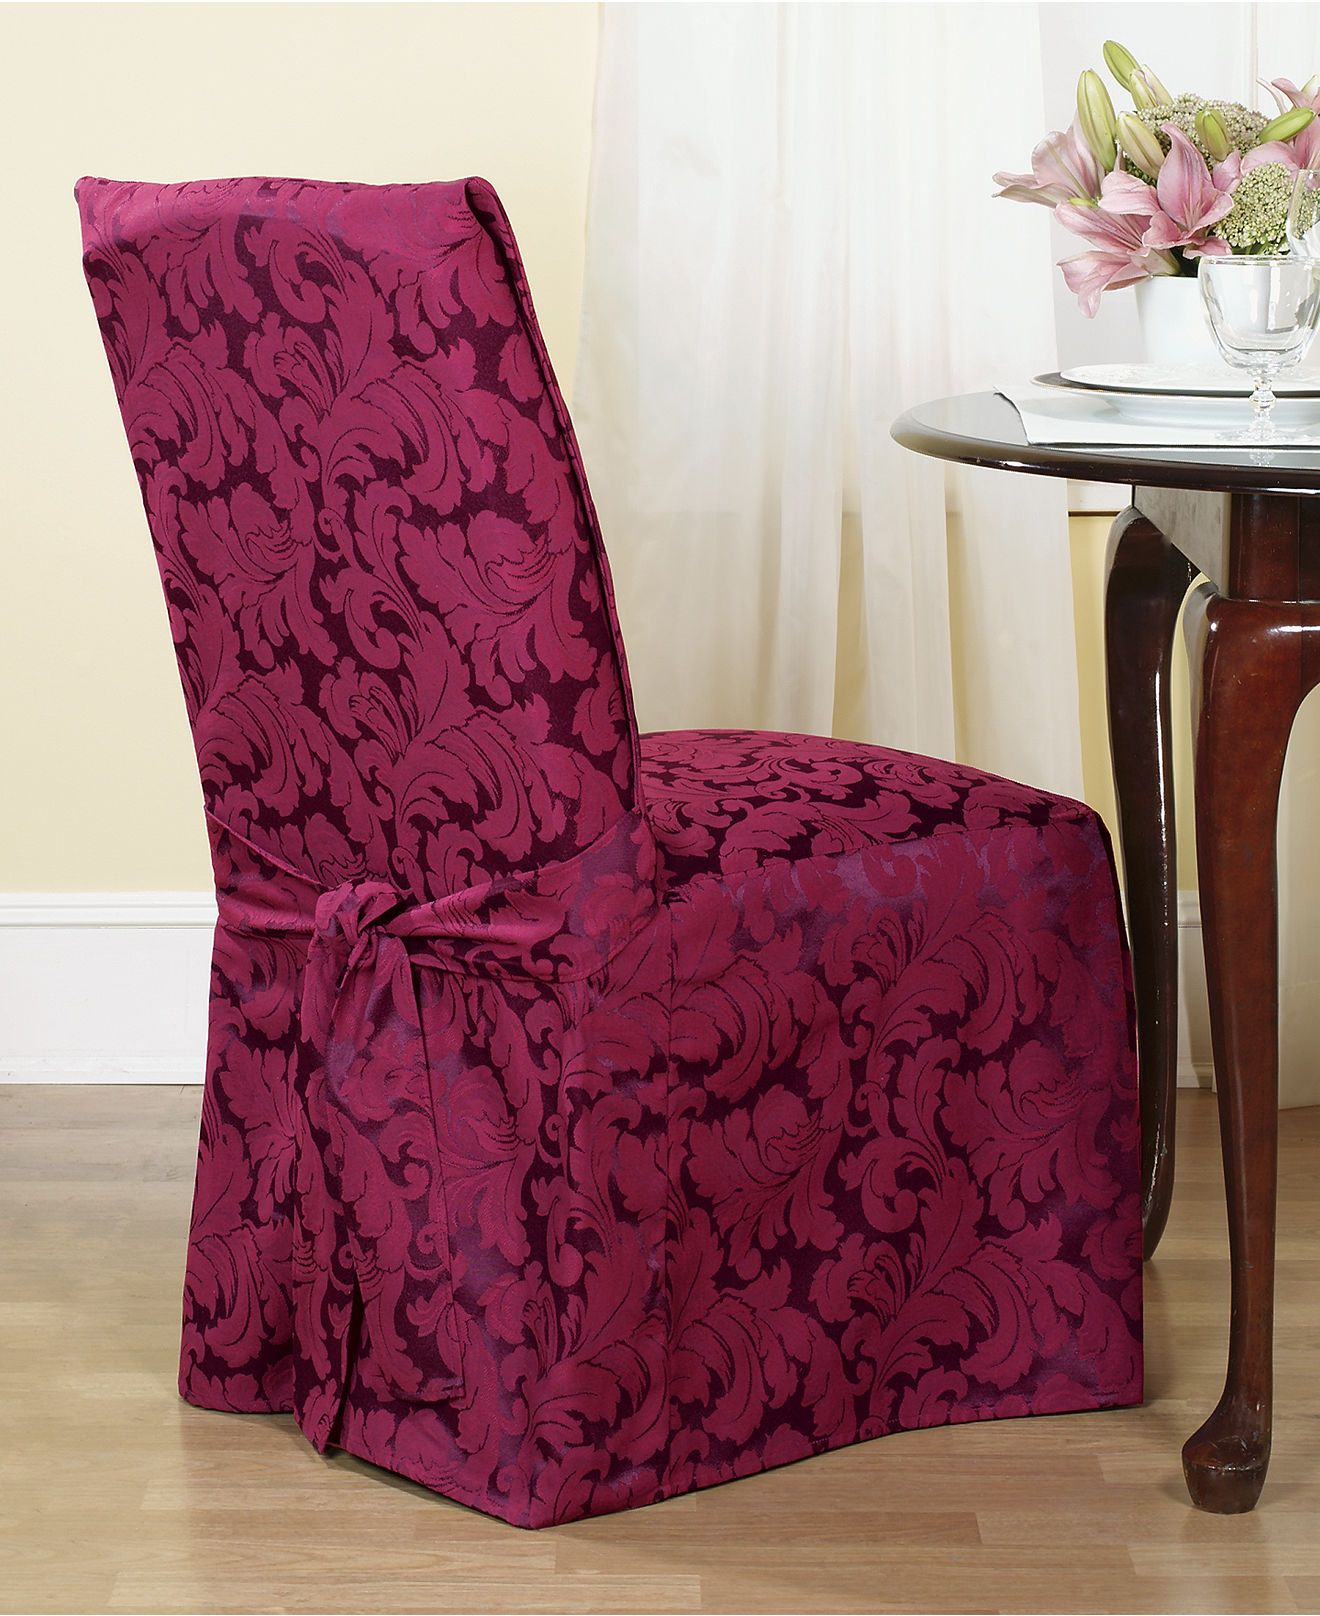 Dining Chair Slip Covers Uk Pub Table Chairs Room Sewing Slipcovers For